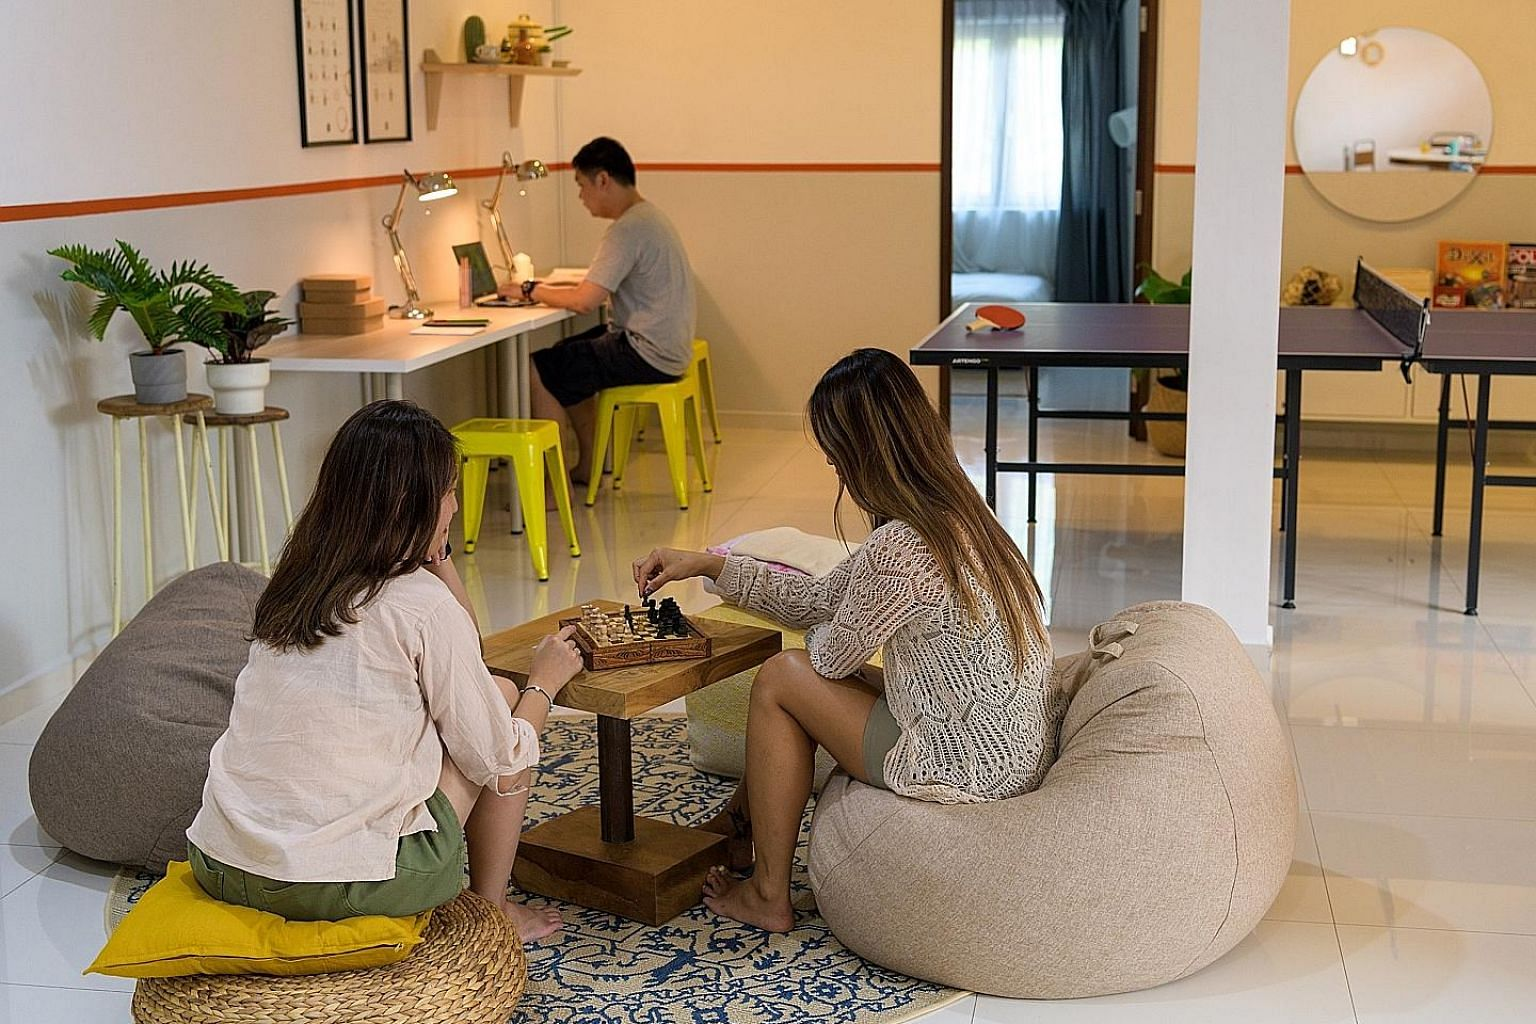 Co-living company Figment manages 10 boutique homes across Singapore with 50 beds, including this shophouse unit in Lorong 24A Geylang. Co-living company Commontown, which has 45 beds in six locations, opened its Sixth Avenue unit in Bukit Timah last